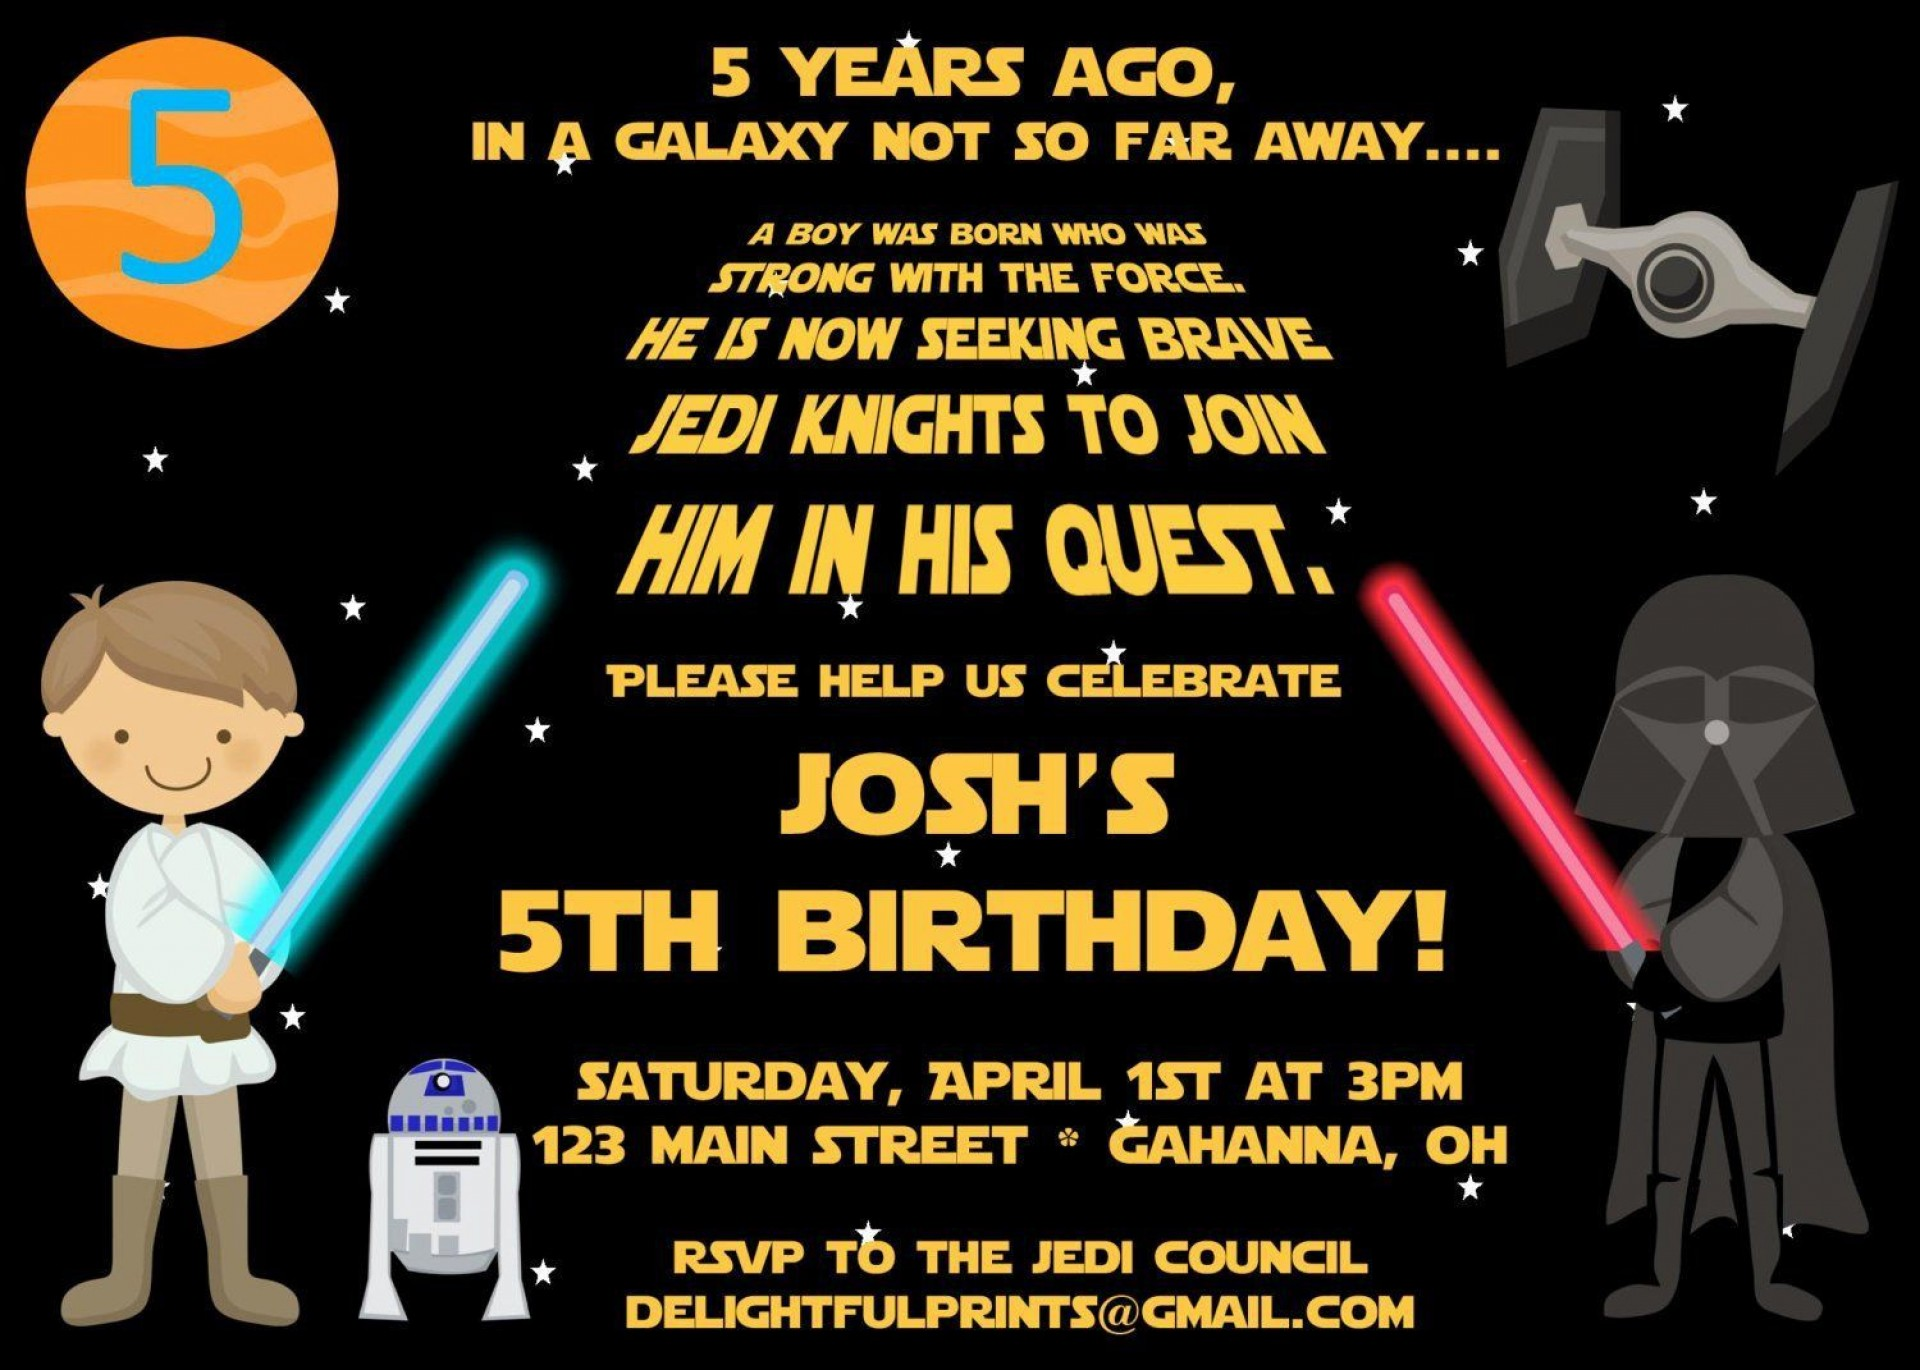 004 Remarkable Star War Birthday Invitation Template Concept  Free Party Printable1920